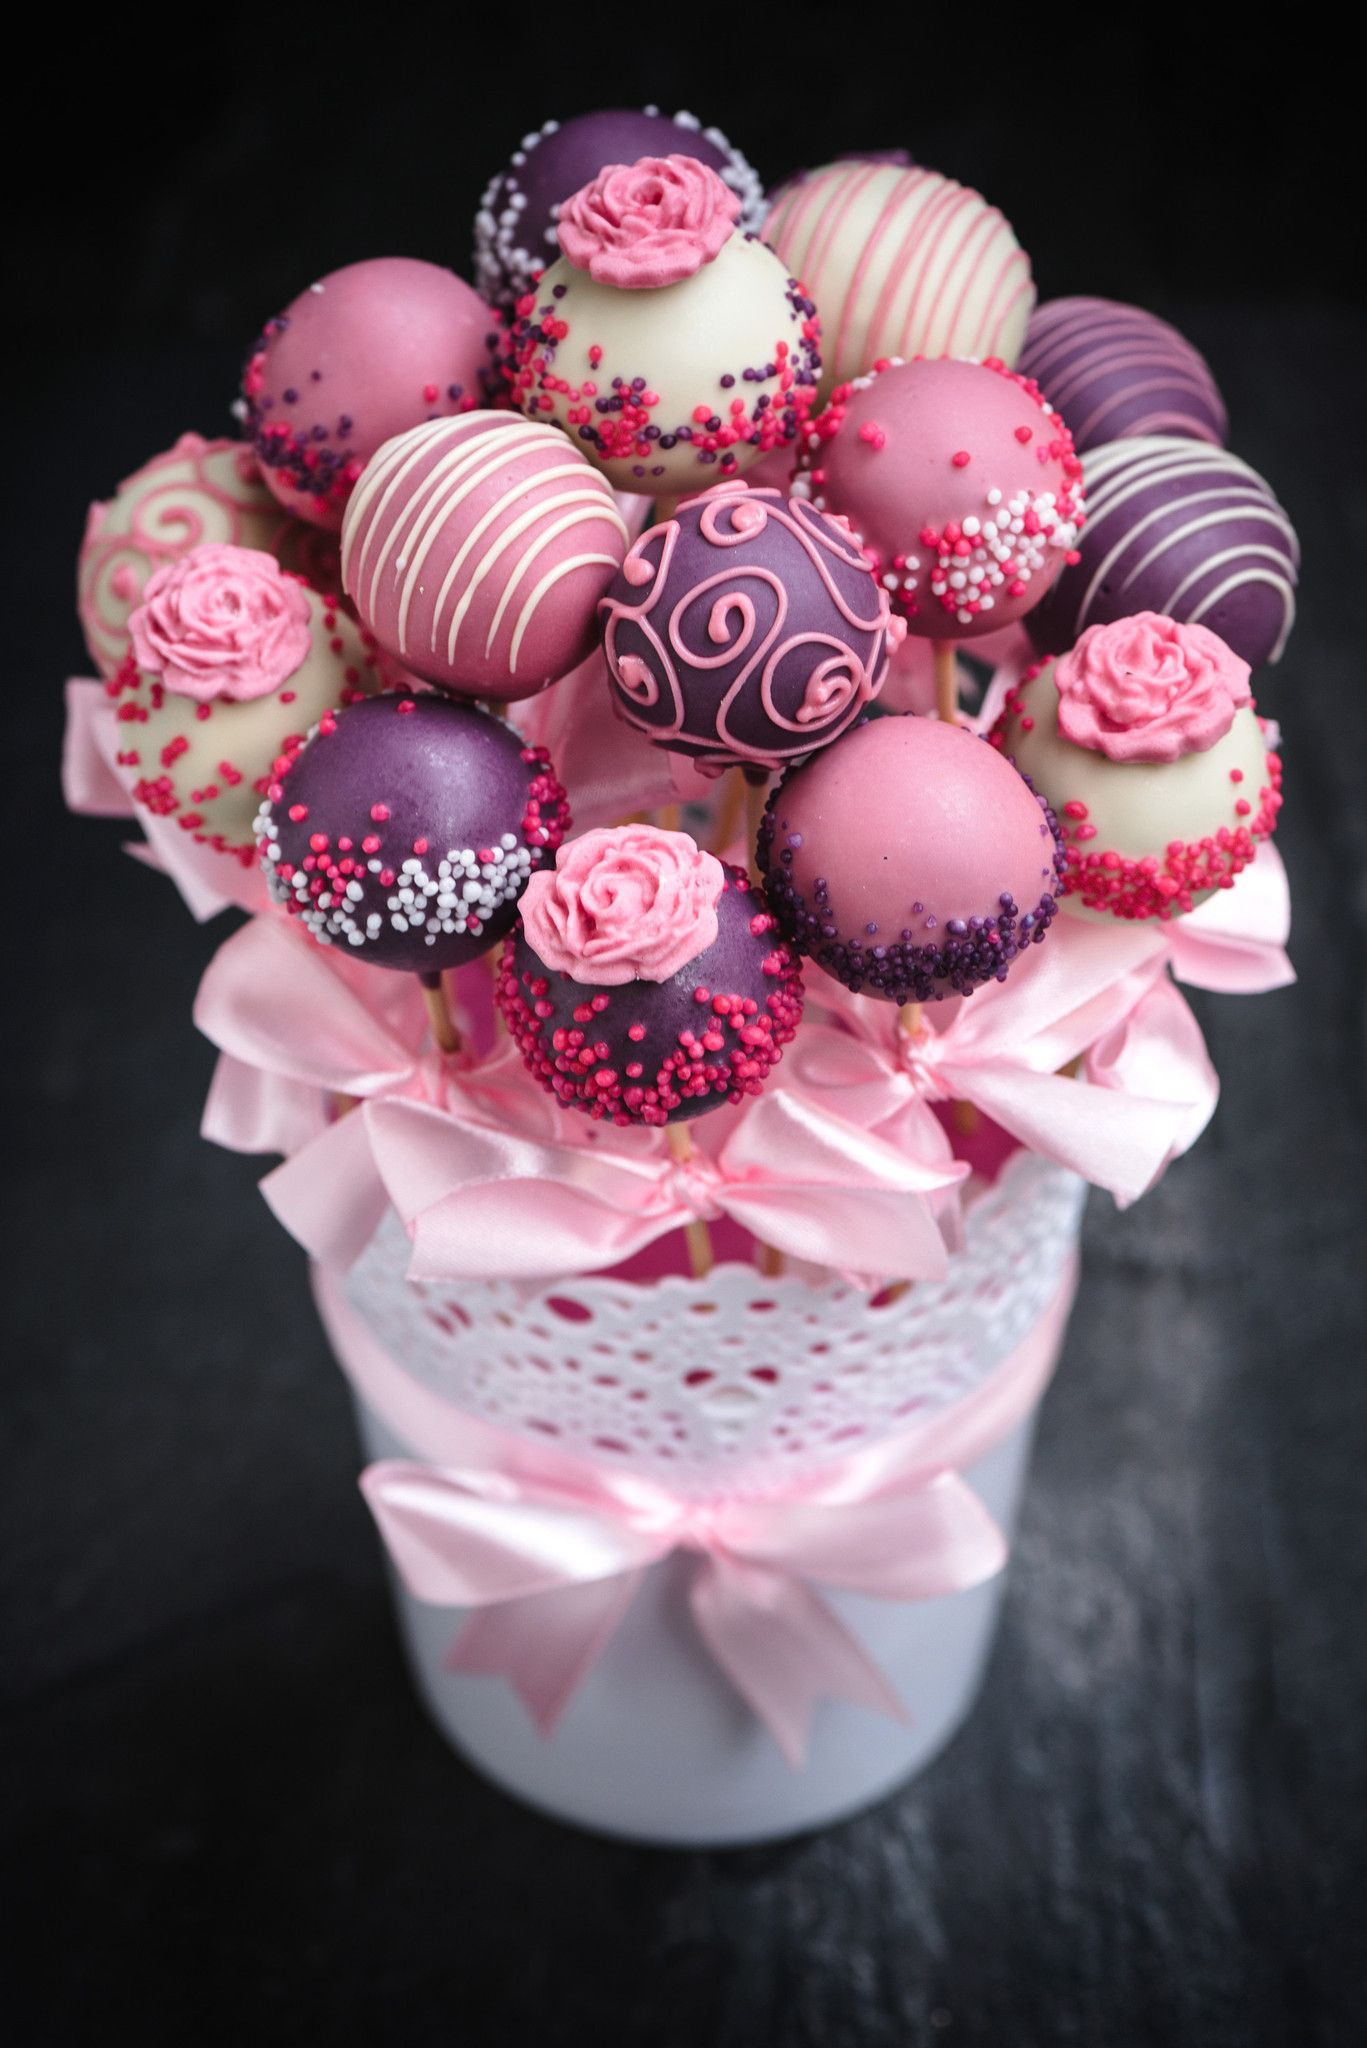 Cake Pop Bouquet Delivery Send Pops Instead Of Flowers